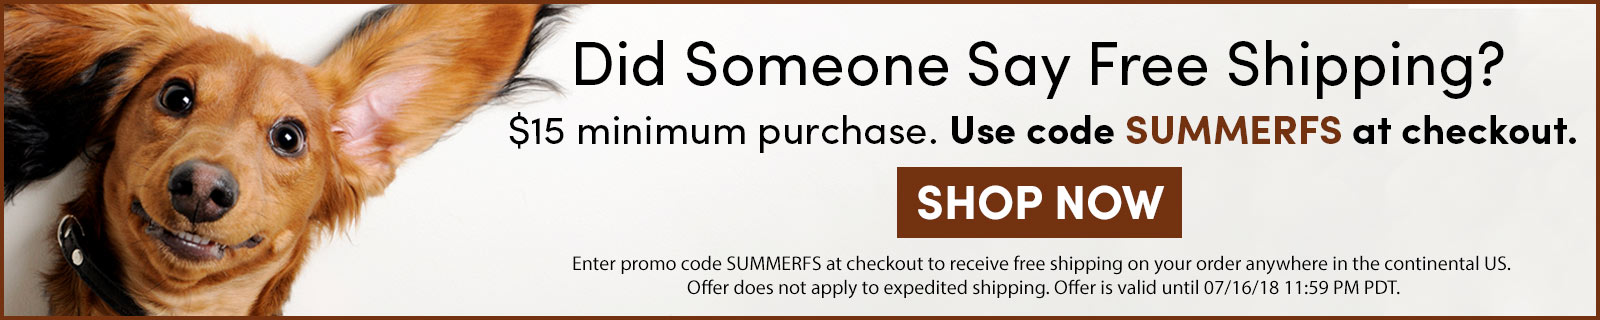 Did Someone Say Free Shipping? $15 minimum purchase. Use code SUMMERFS at checkout. SHOP NOW